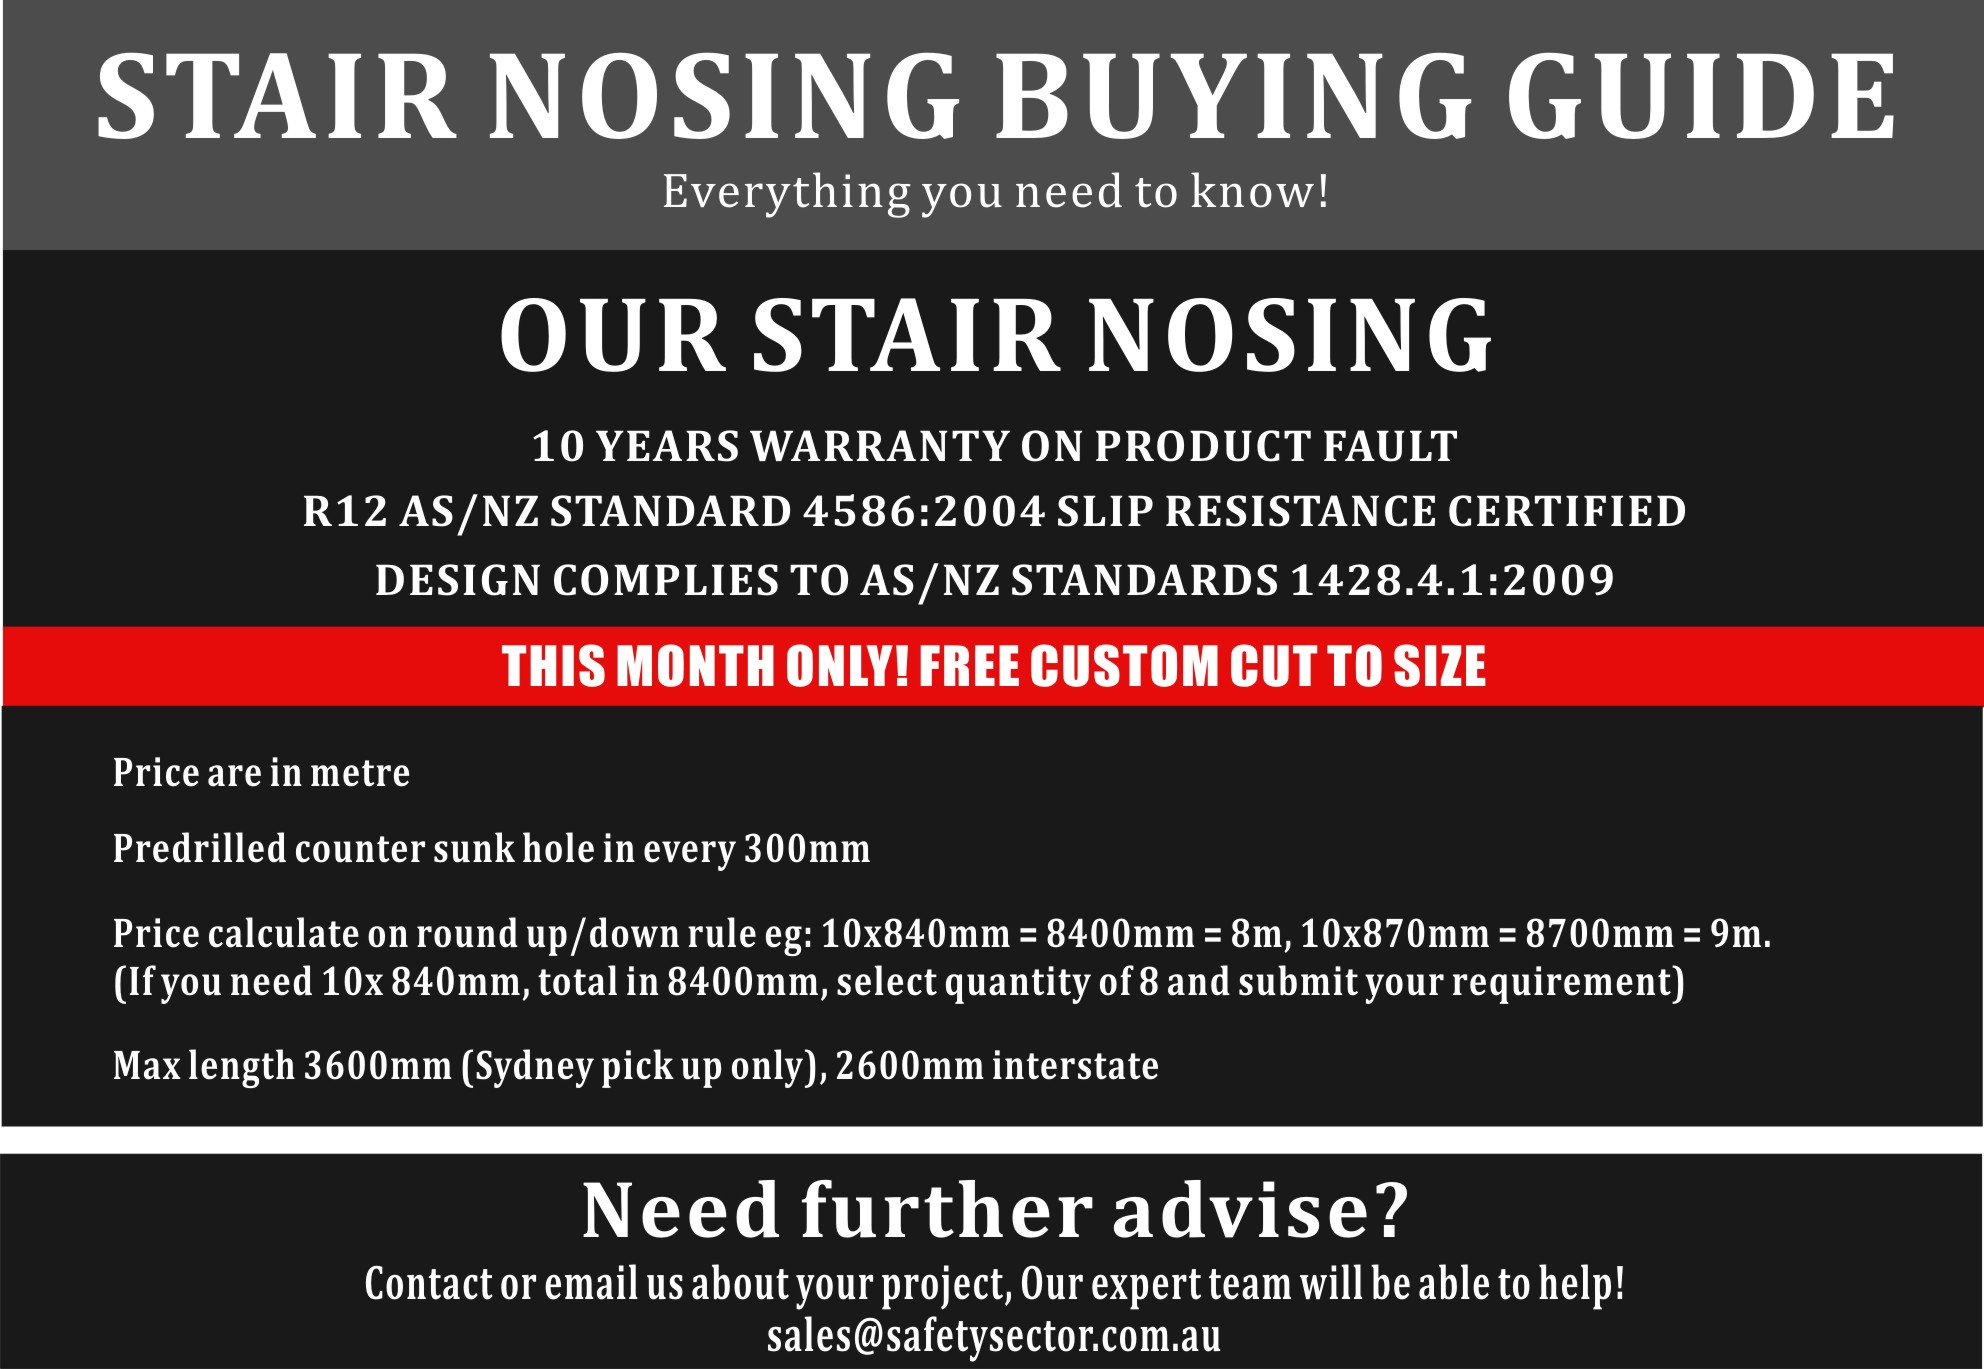 stair-nosing-buying-guide.jpg